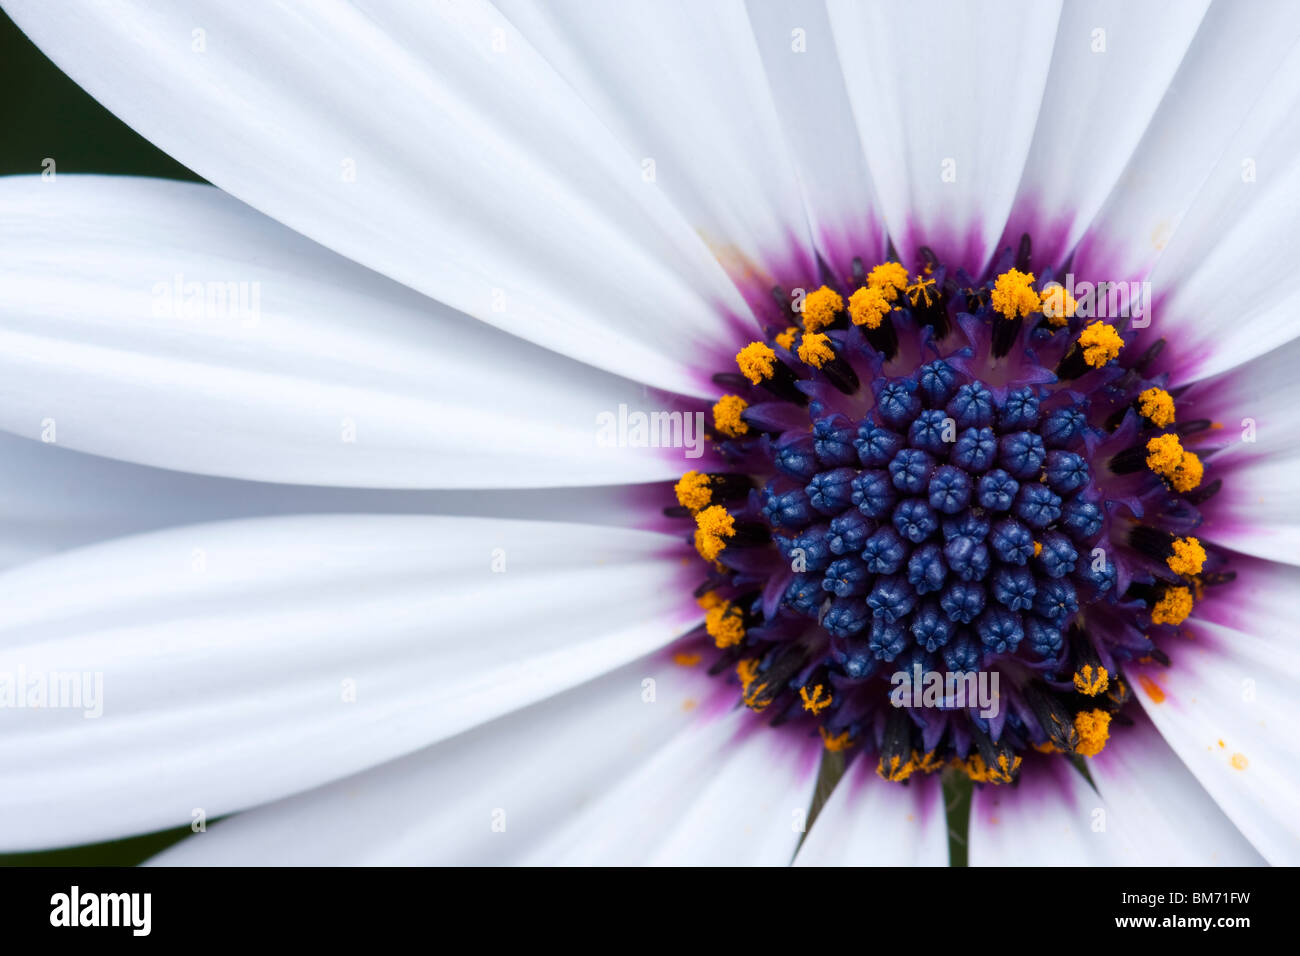 White flower with purple center stock photos white flower with a close up shot of beautiful white flower with purple center stock image izmirmasajfo